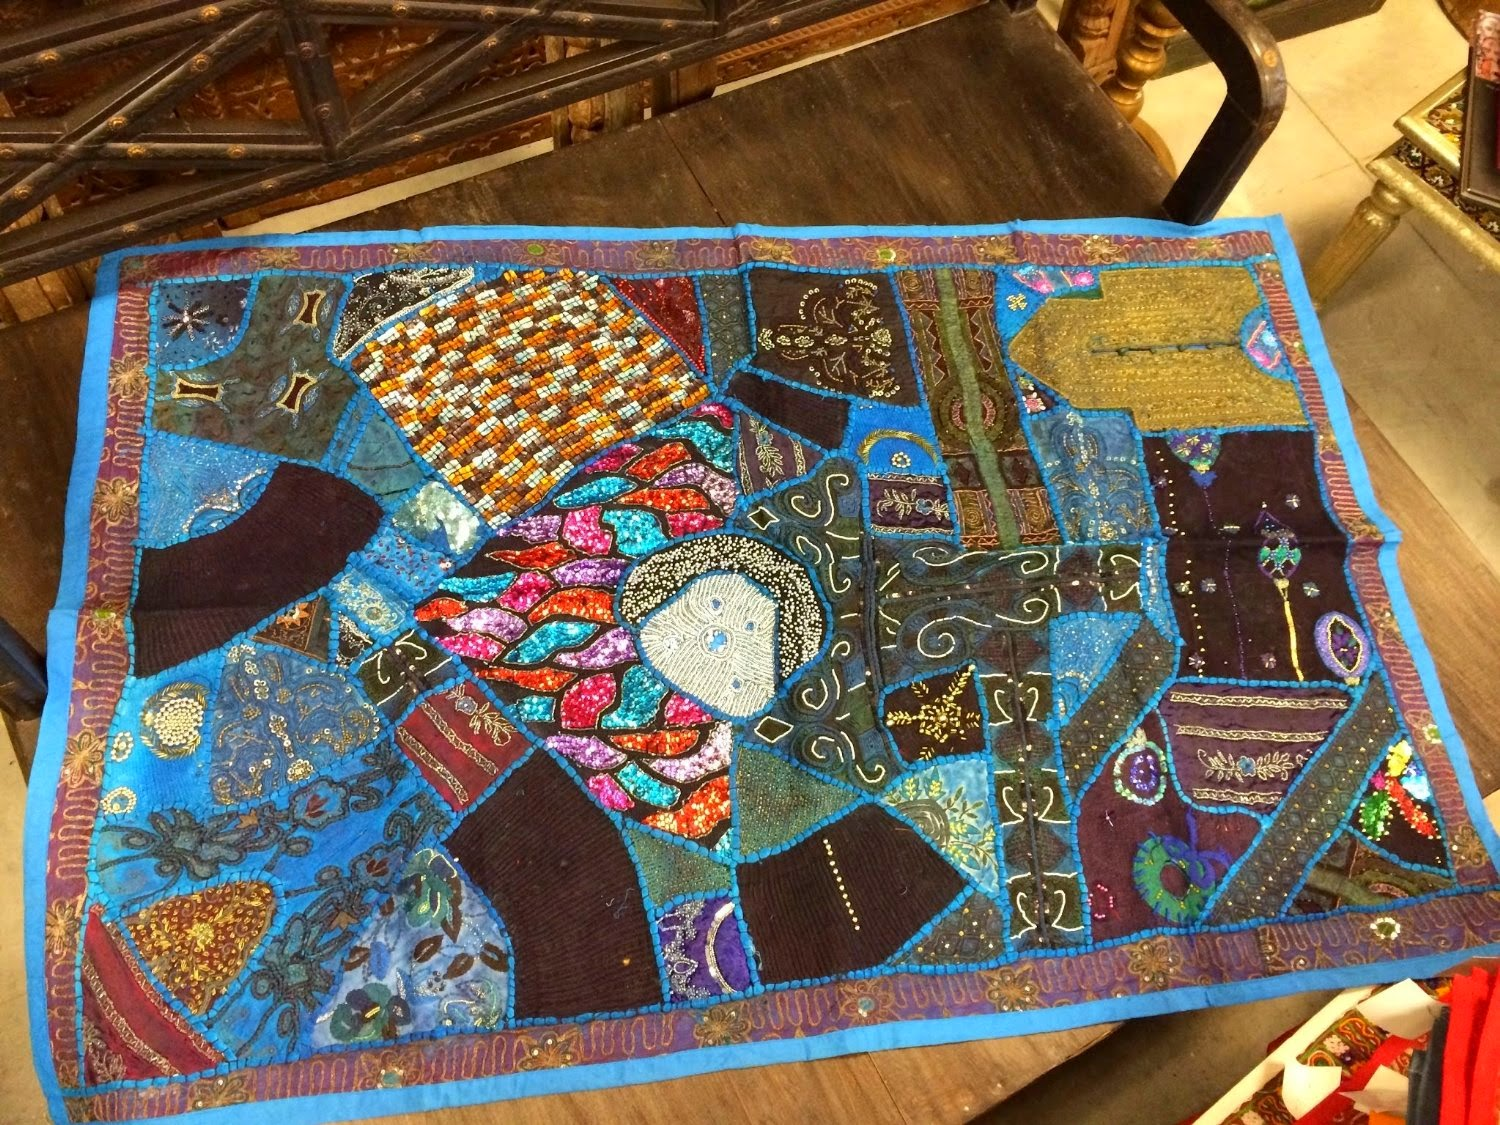 http://www.amazon.com/Tapestry-Handmade-Sequins-Embroidered-Patchwork/dp/B00R0XKWXA/ref=sr_1_8?m=A1FLPADQPBV8TK&s=merchant-items&ie=UTF8&qid=1426055112&sr=1-8&keywords=wall+hanging